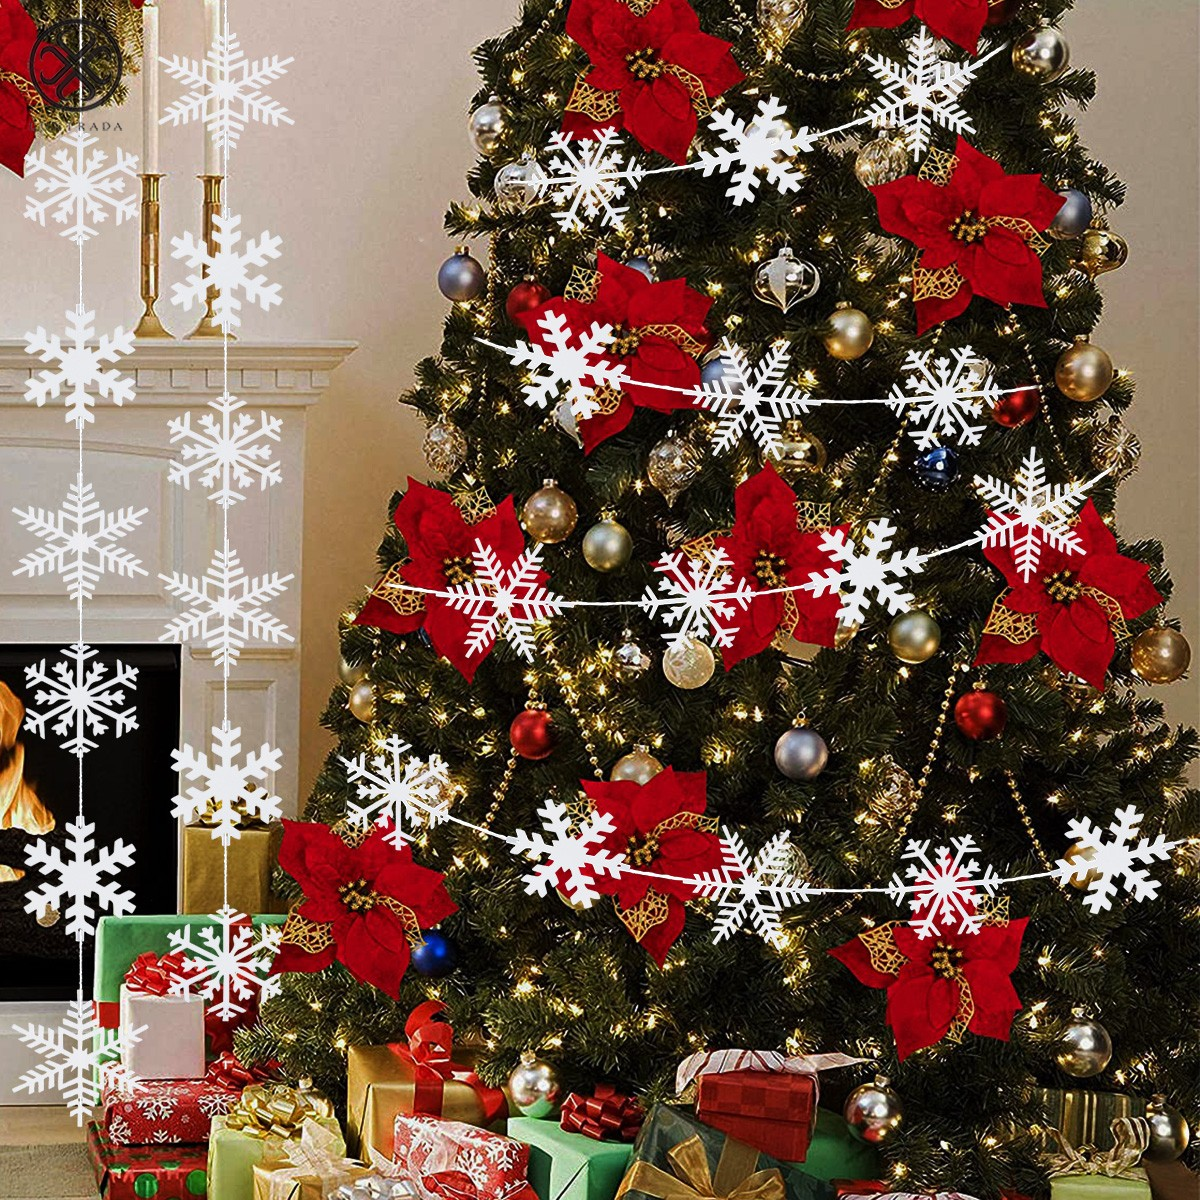 45 Pieces Christmas Cutouts Christmas Snowflake Snowman Cutouts Hanging Banner Winter Colorful Mixed Cut-Outs with Rope for Christmas Winter Party Classroom Decoration